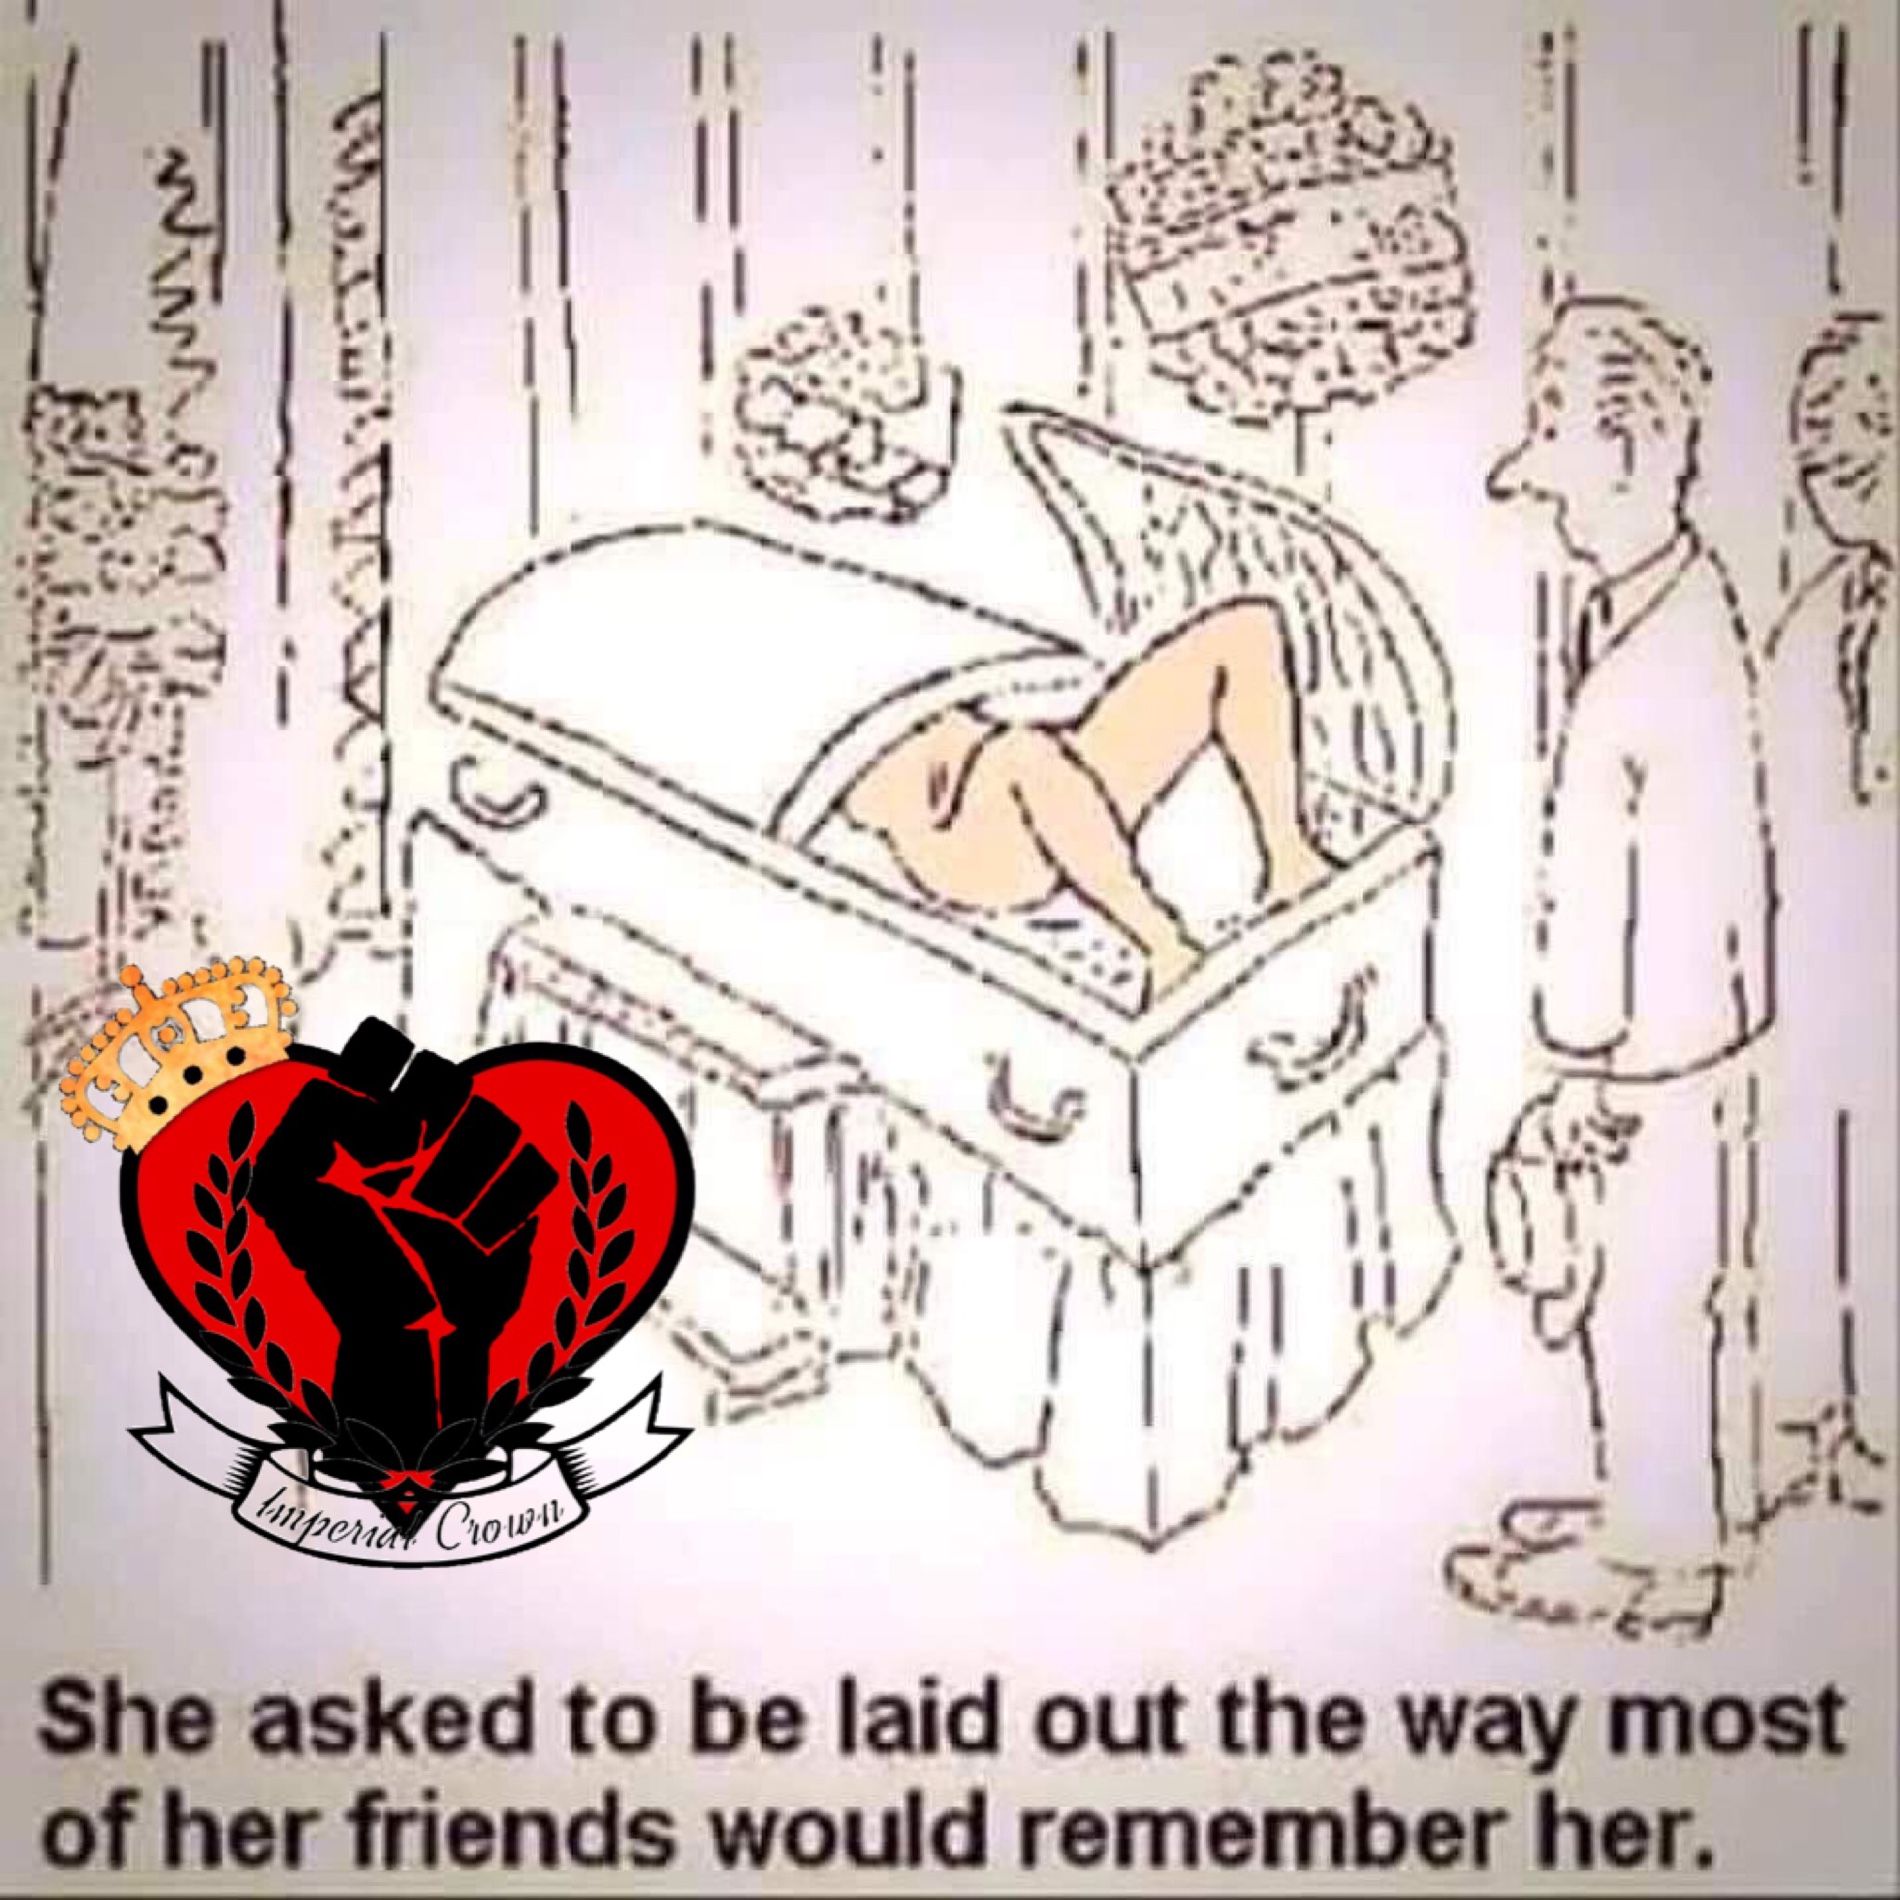 She asked to be laid out…